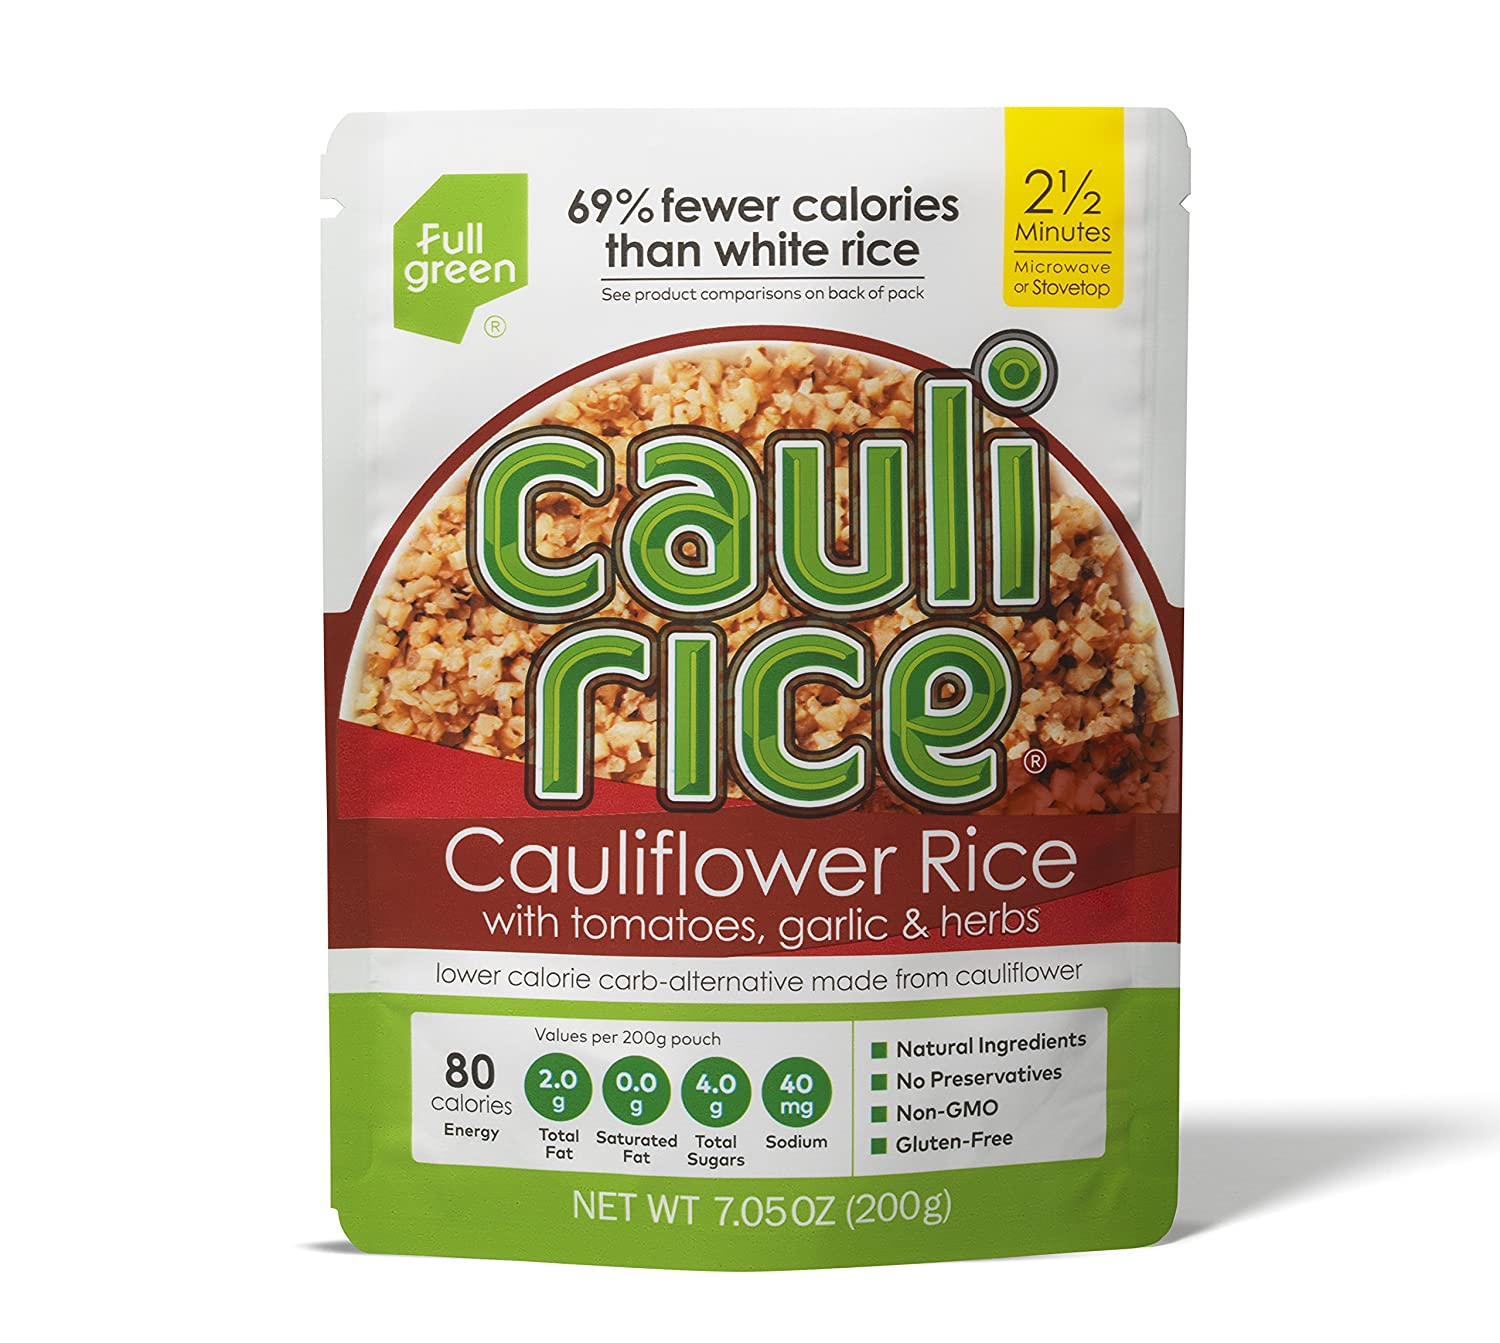 Fullgreen Cauli Rice Cauliflower Rice with Tomatoes, Garlic and Herbs (7.05 oz)